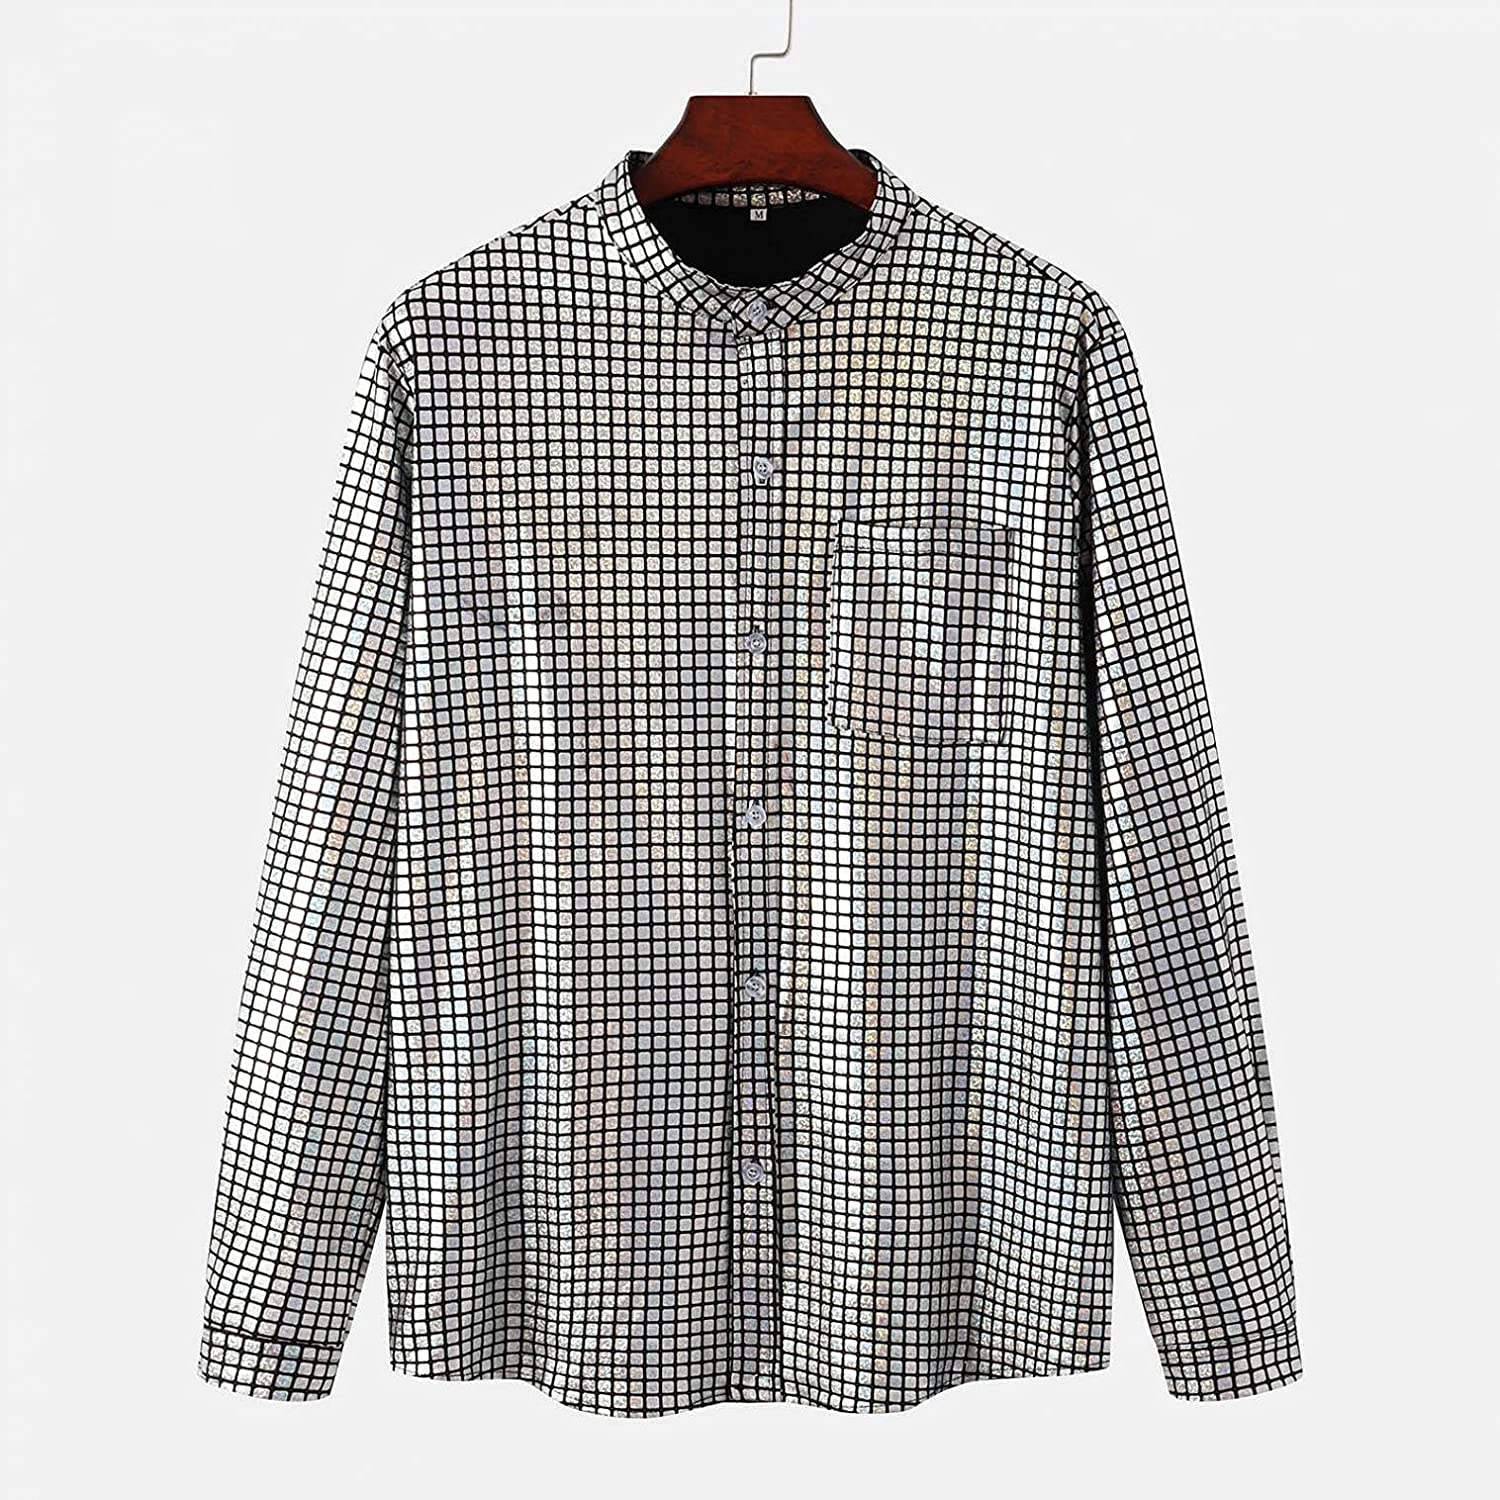 Tops for Mens Stand Collar Retro Long Sleeve Flower Printed Casual Lapel Button-Down Shirts